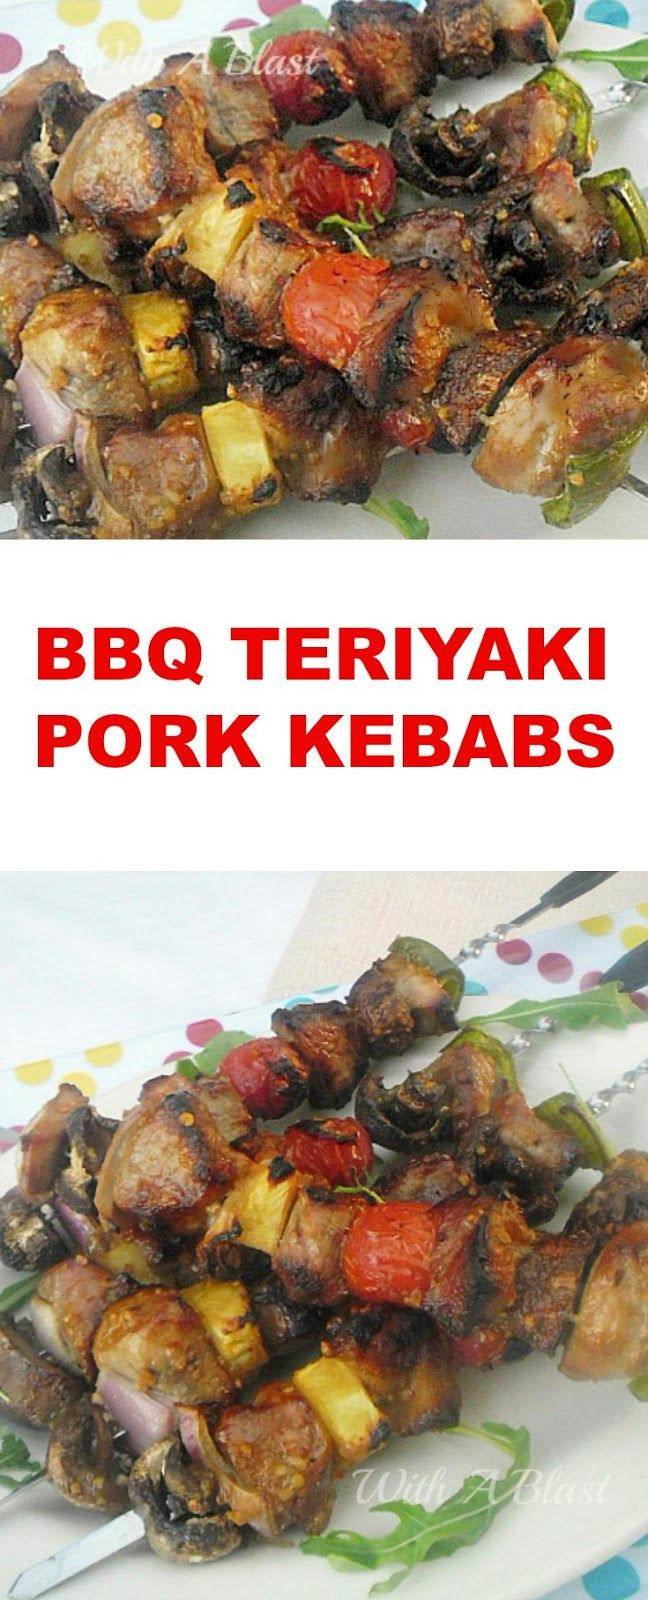 Marinated, Tender Pork with veggies etc, brushed with a tangy basting sauce and grilled to perfection